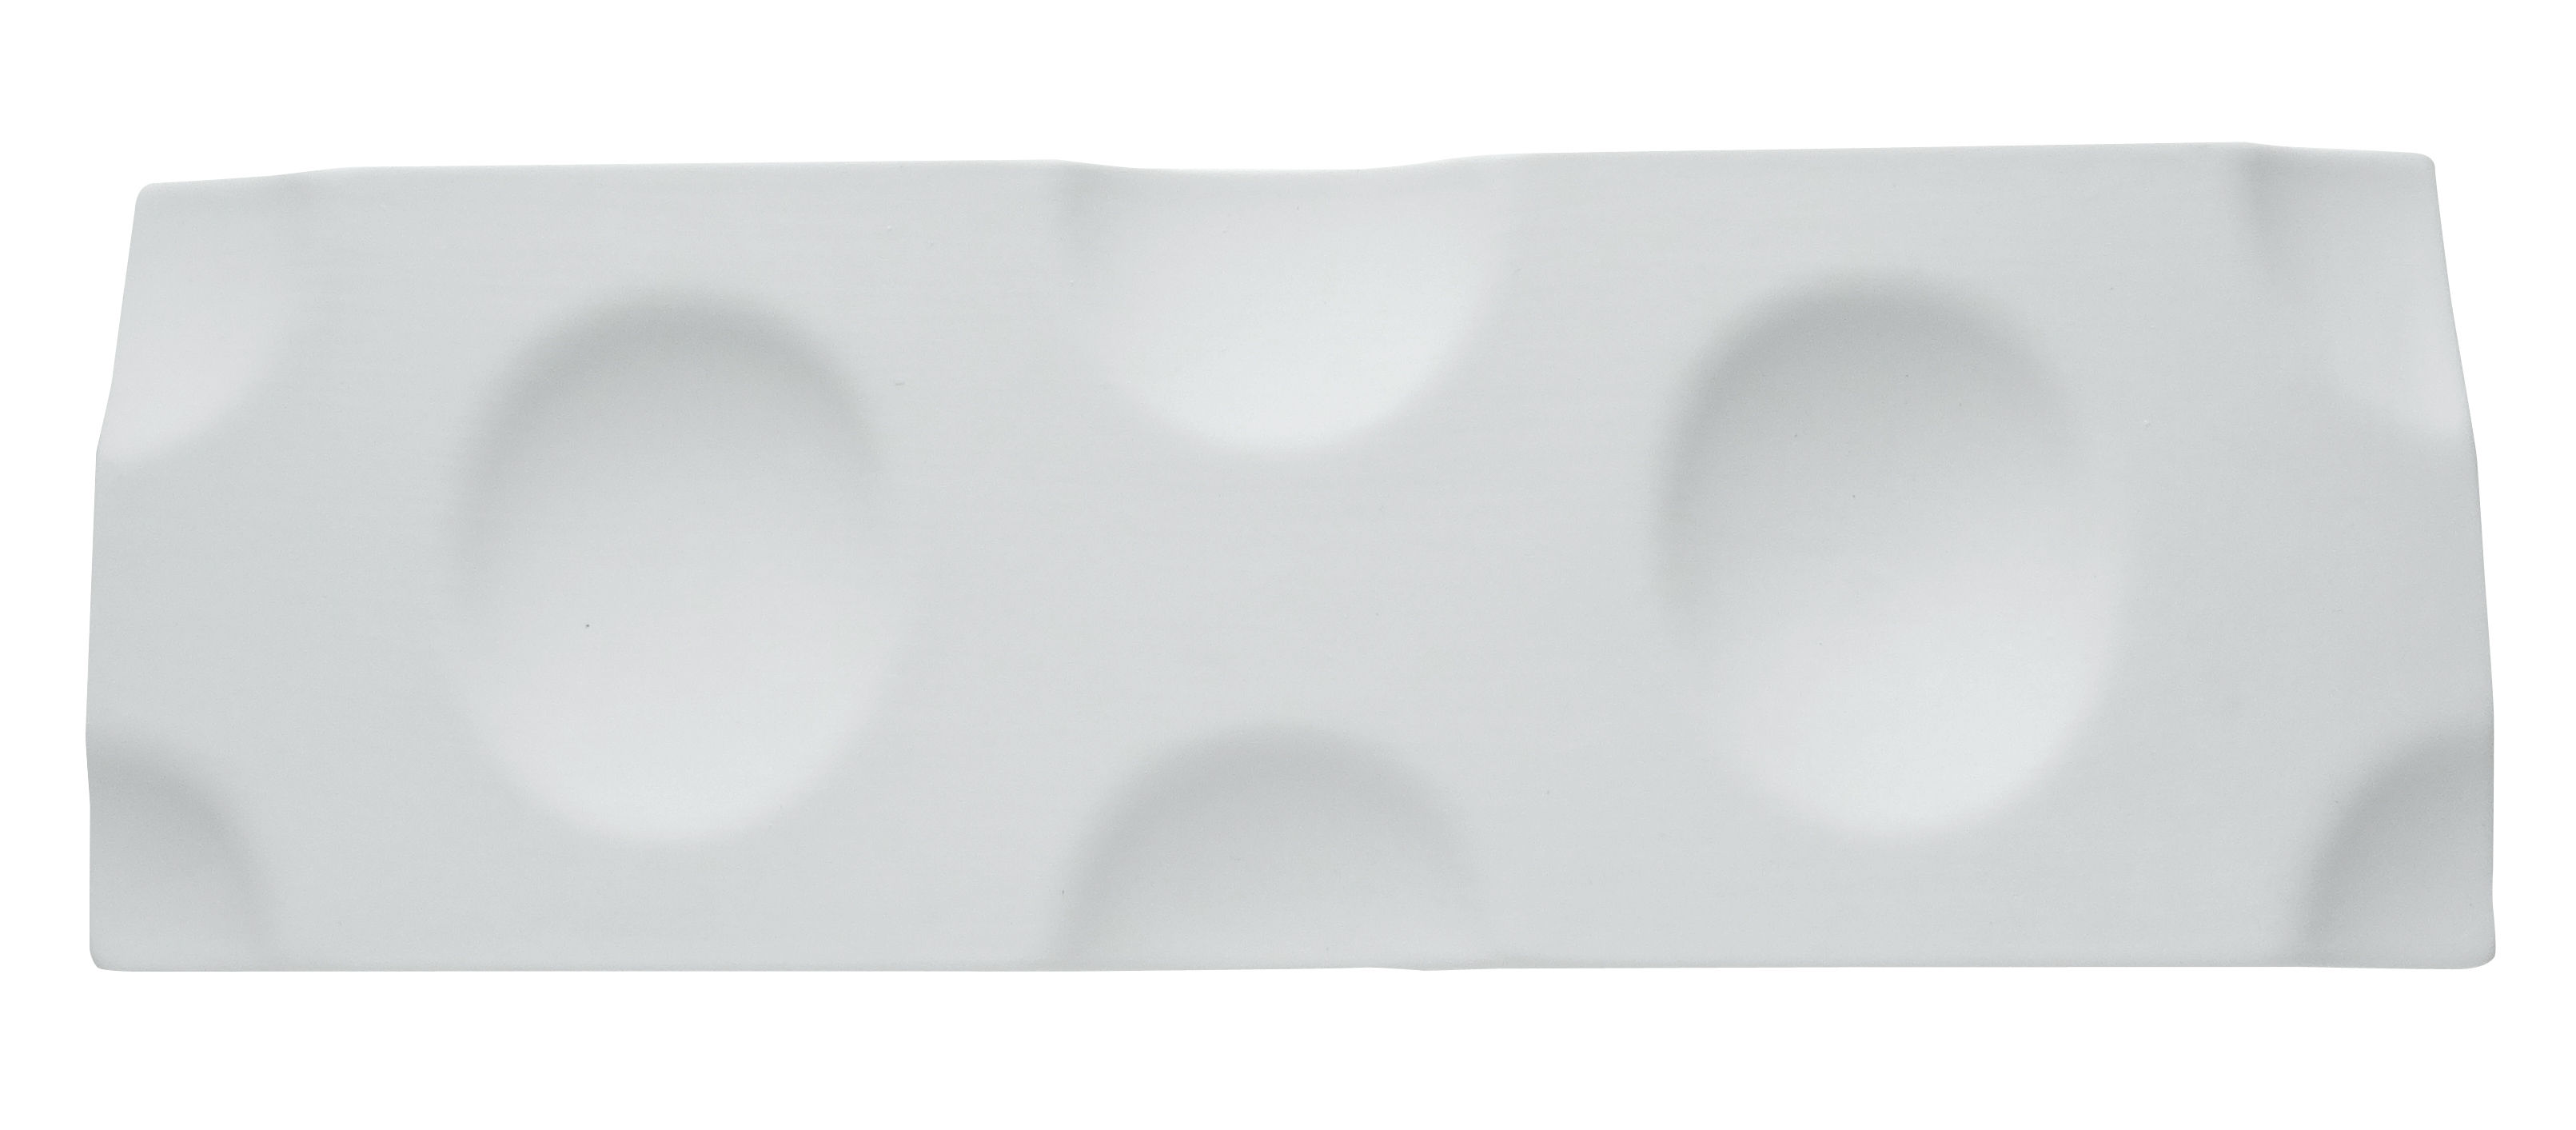 Arts de la table - Plateaux - Plateau Jo 2 / Support 2 coupelles  - 29 x 10 cm - cookplay - Blanc mat - Porcelaine mate